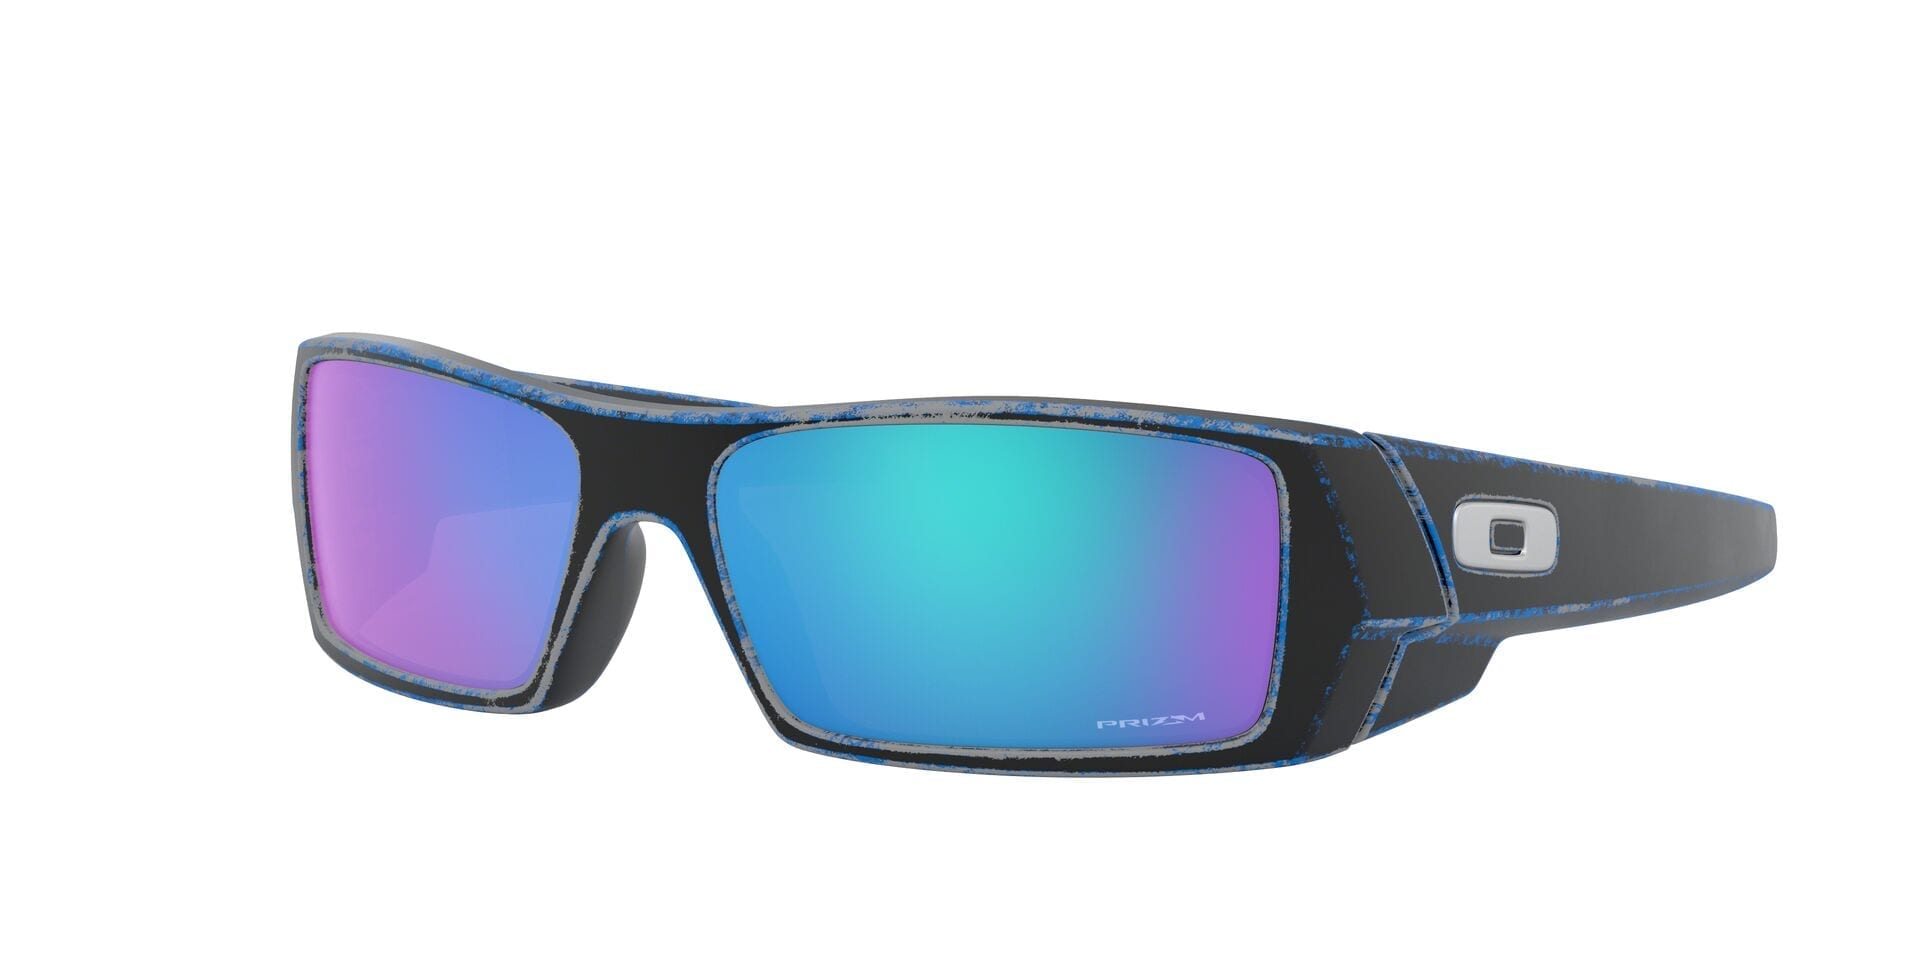 20edb8848109 Oakley Race Worn Collection Sunglasses - ADS Lifestyle